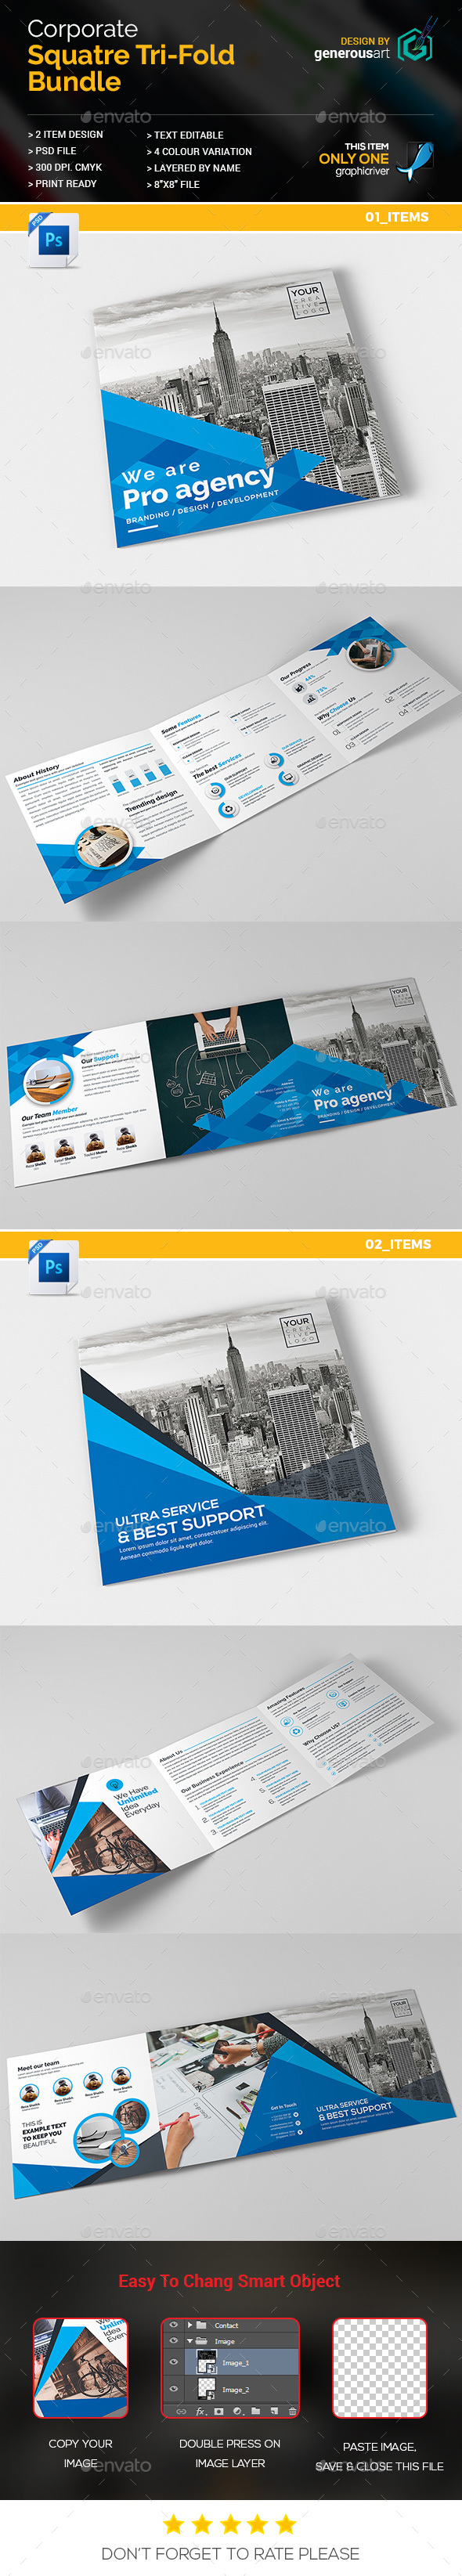 Bundle_Square Tri-Fold 2 in 1 - Corporate Brochures